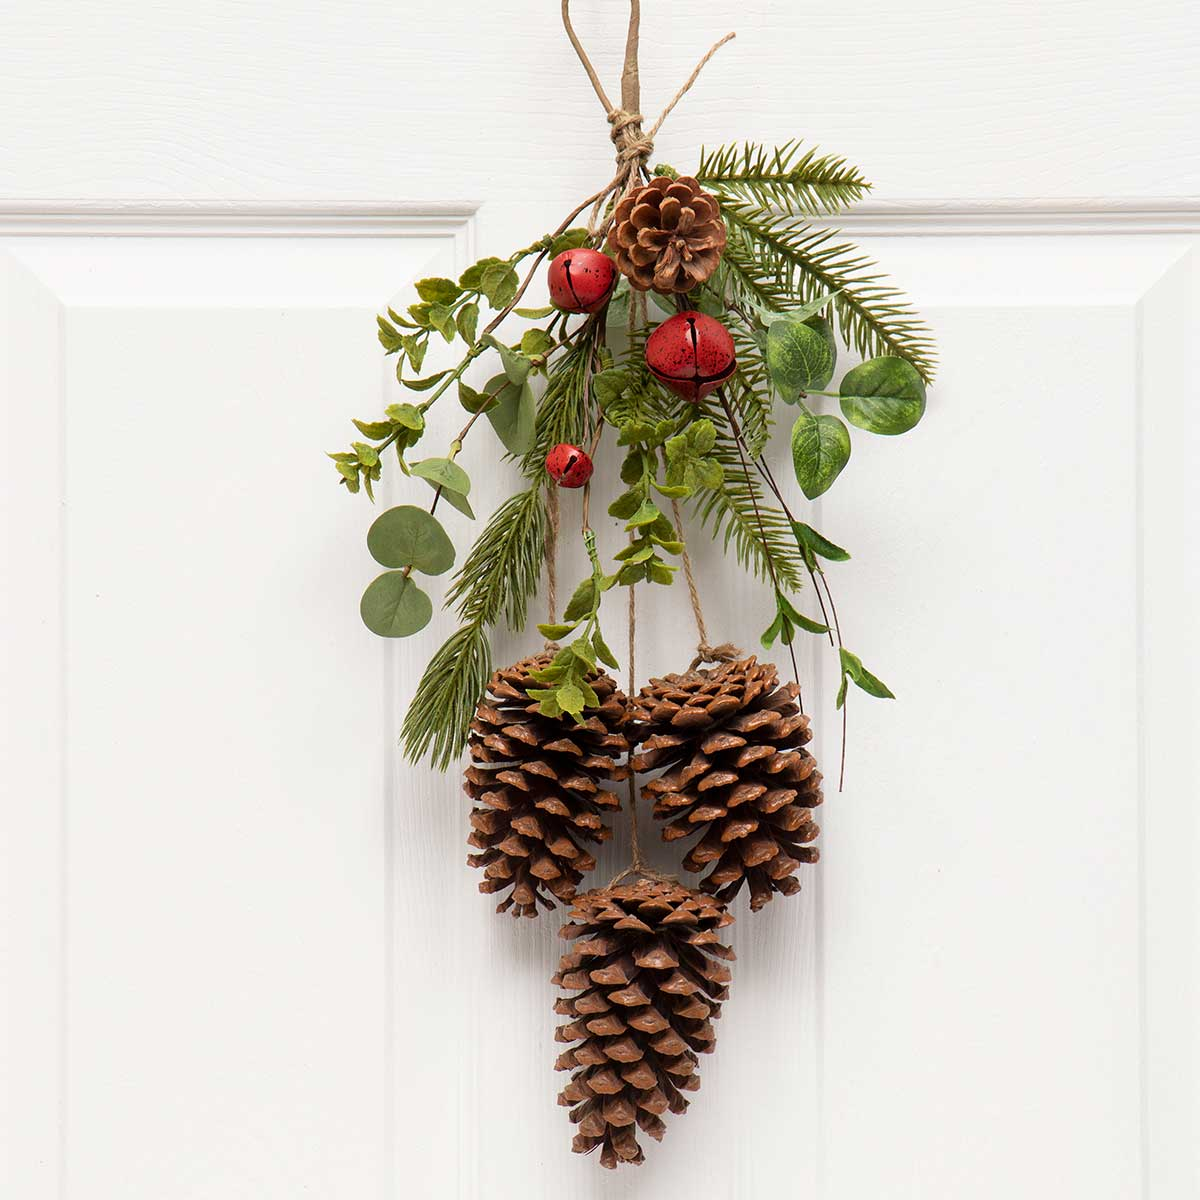 PINECONE X3 DROP ORNAMENT WITH PINE,